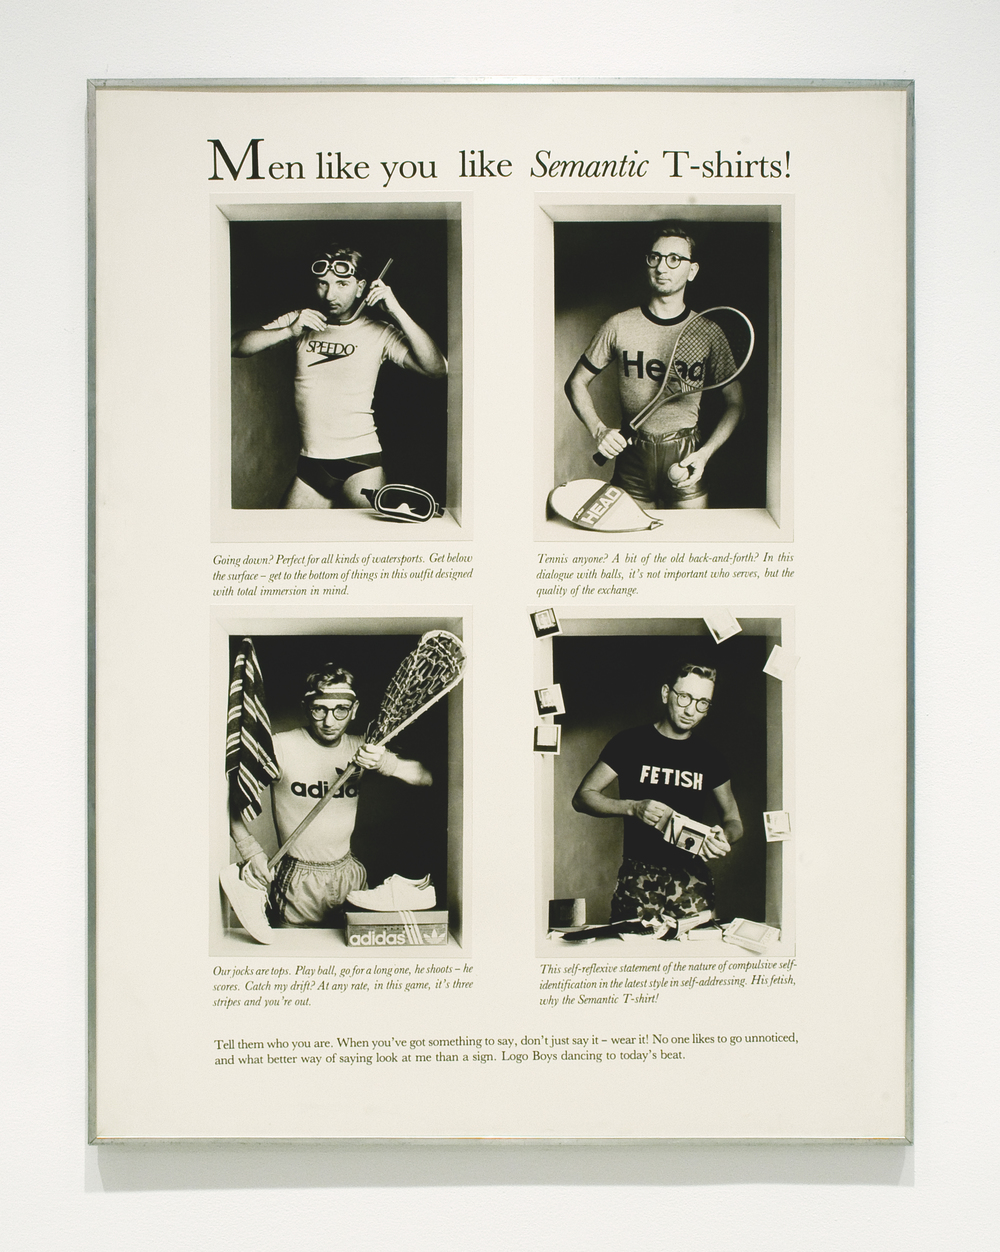 David Buchan,   Modern Fashions Suite:     Men Like You Like Semantic T-Shirts  , 1977.   Collection University of Lethbridge Art Gallery.